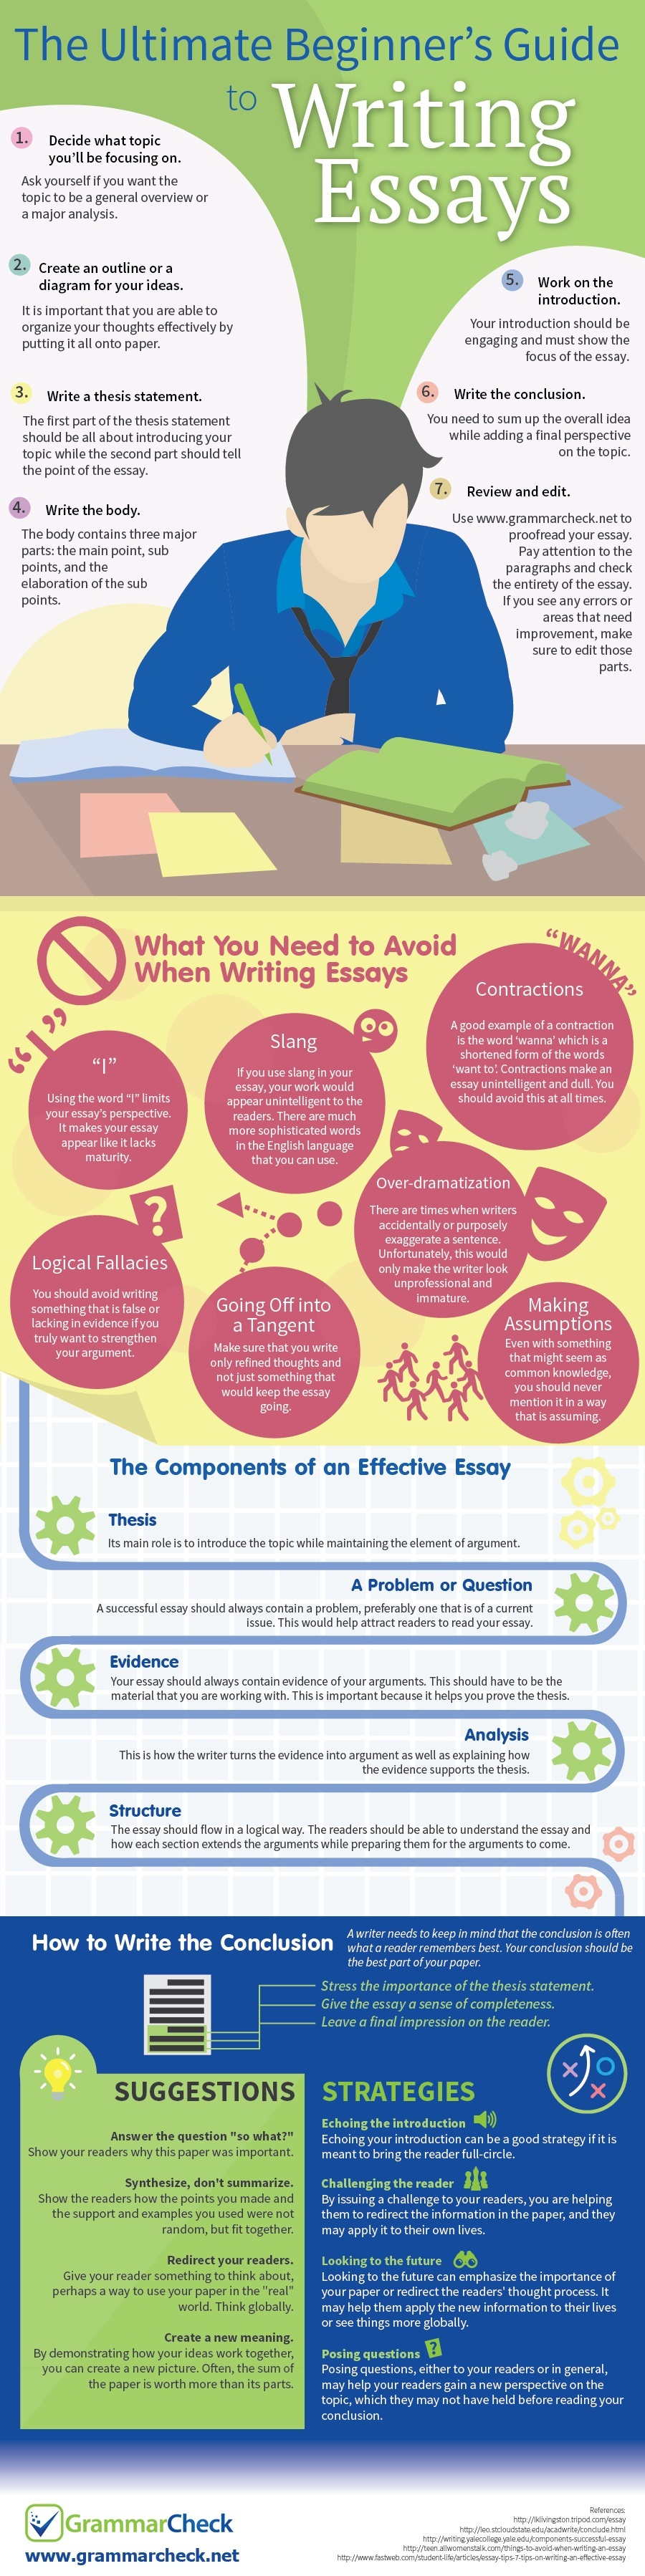 Living A Healthy Lifestyle Essay The Ultimate Beginners Guide To Writing Essays Infographic Essay On Nature Vs Nurture also I Have A Dream Analysis Essay The Ultimate Beginners Guide To Writing Essays  Writers Knowhow Essay On Solar System For Kids